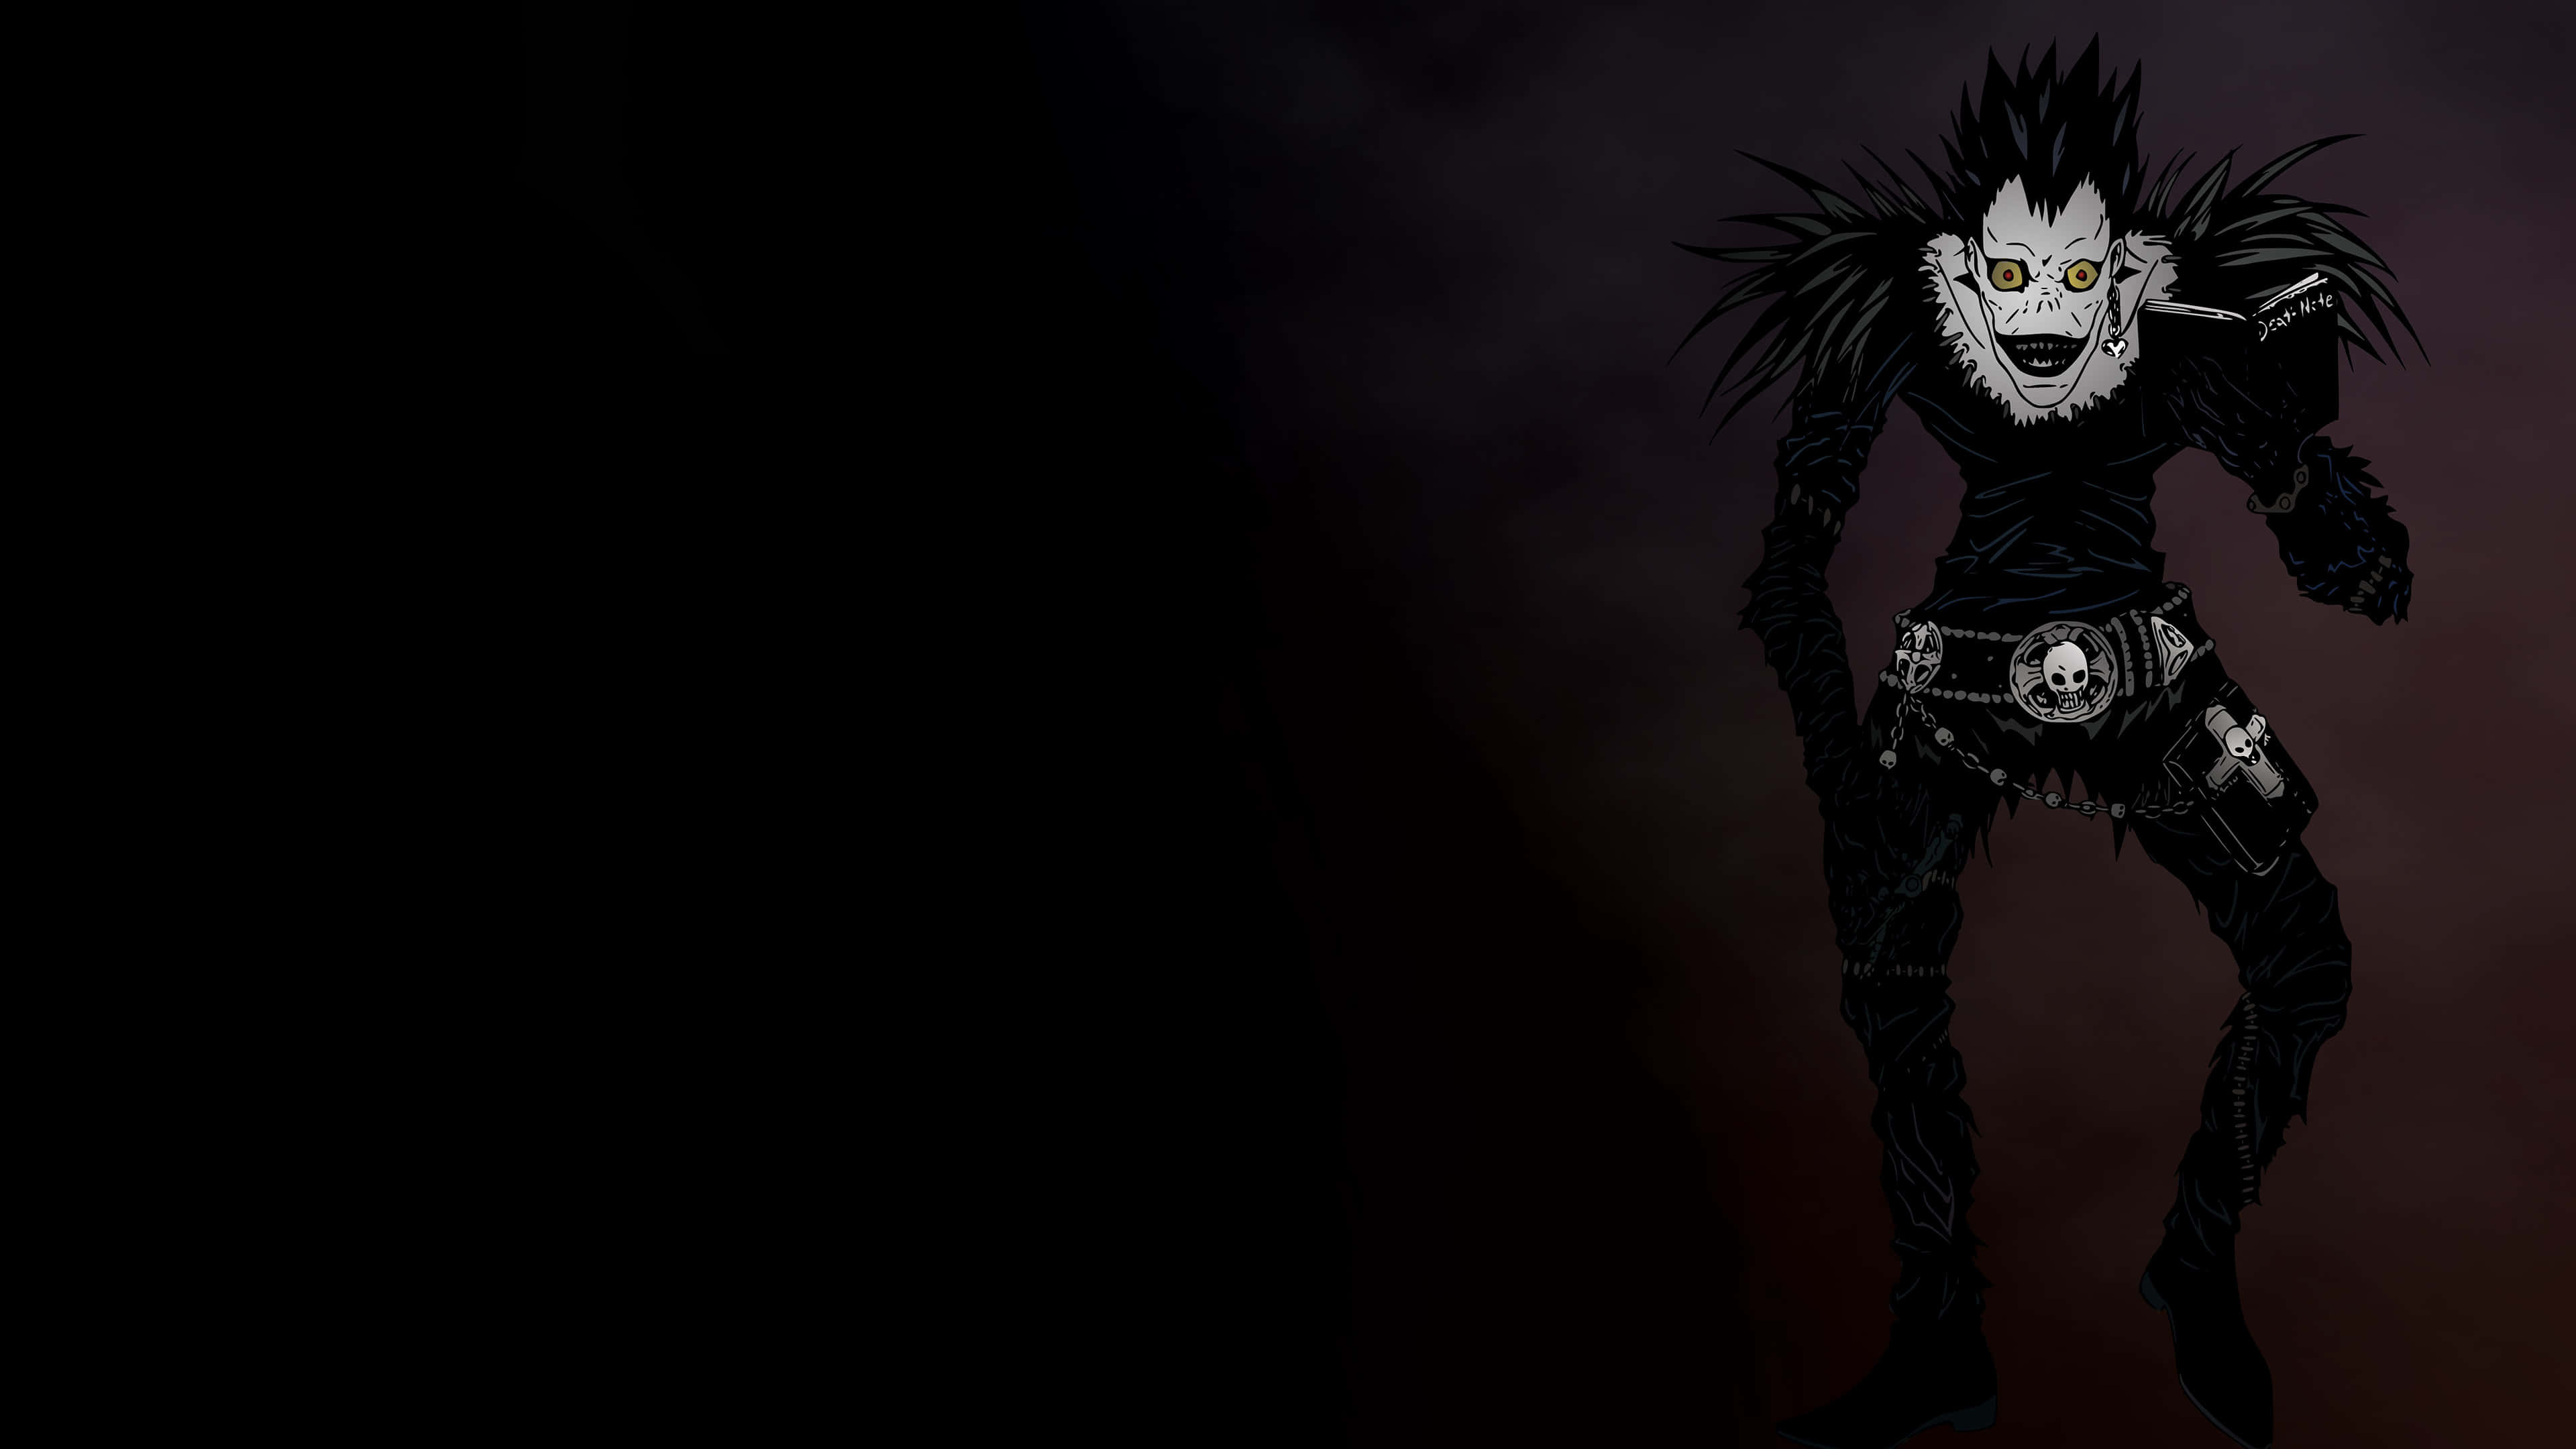 death note wallpaper,black,darkness,fictional character,black hair,anime